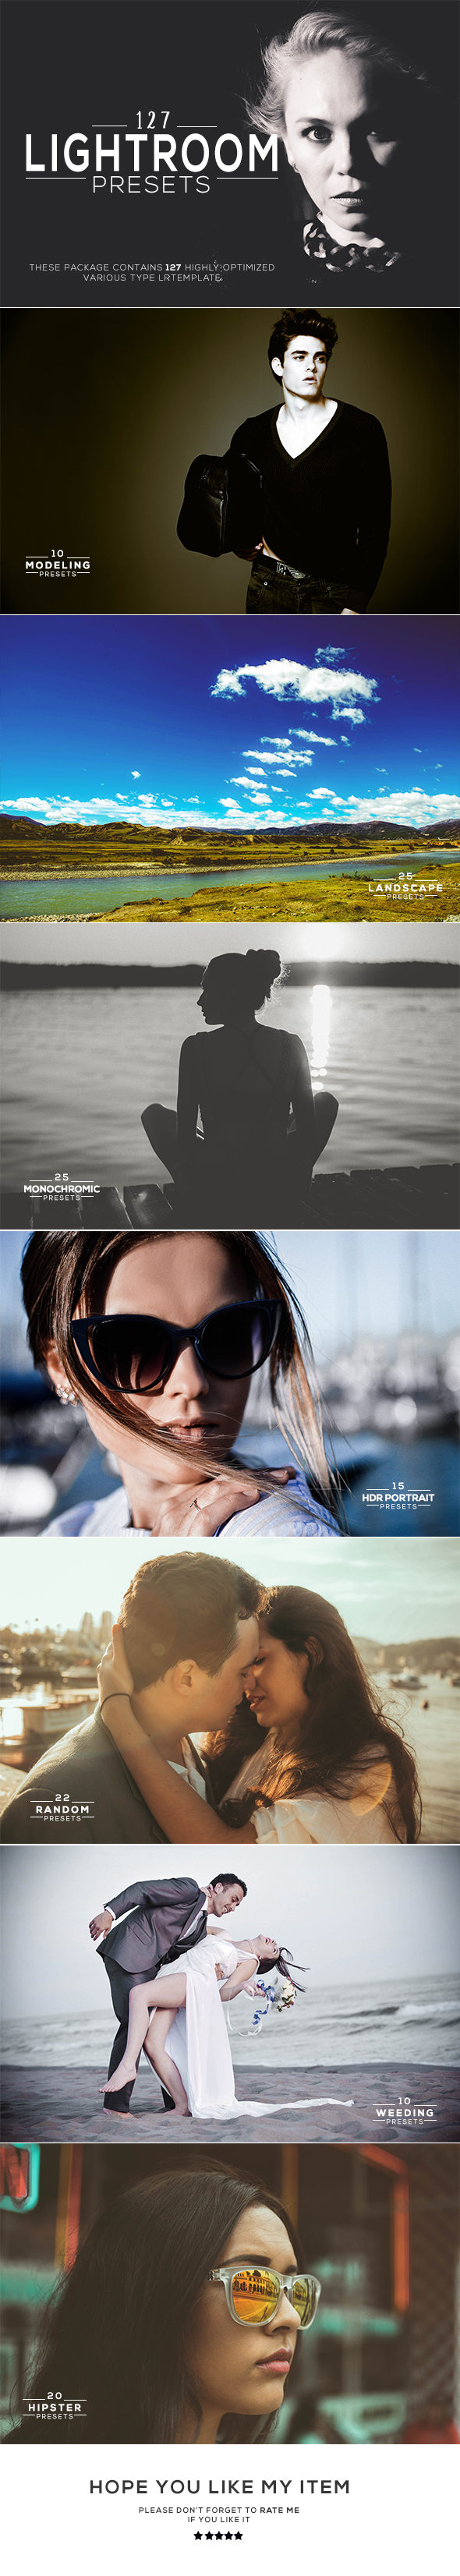 127 Lightroom Presets - Lightroom Presets Add-ons